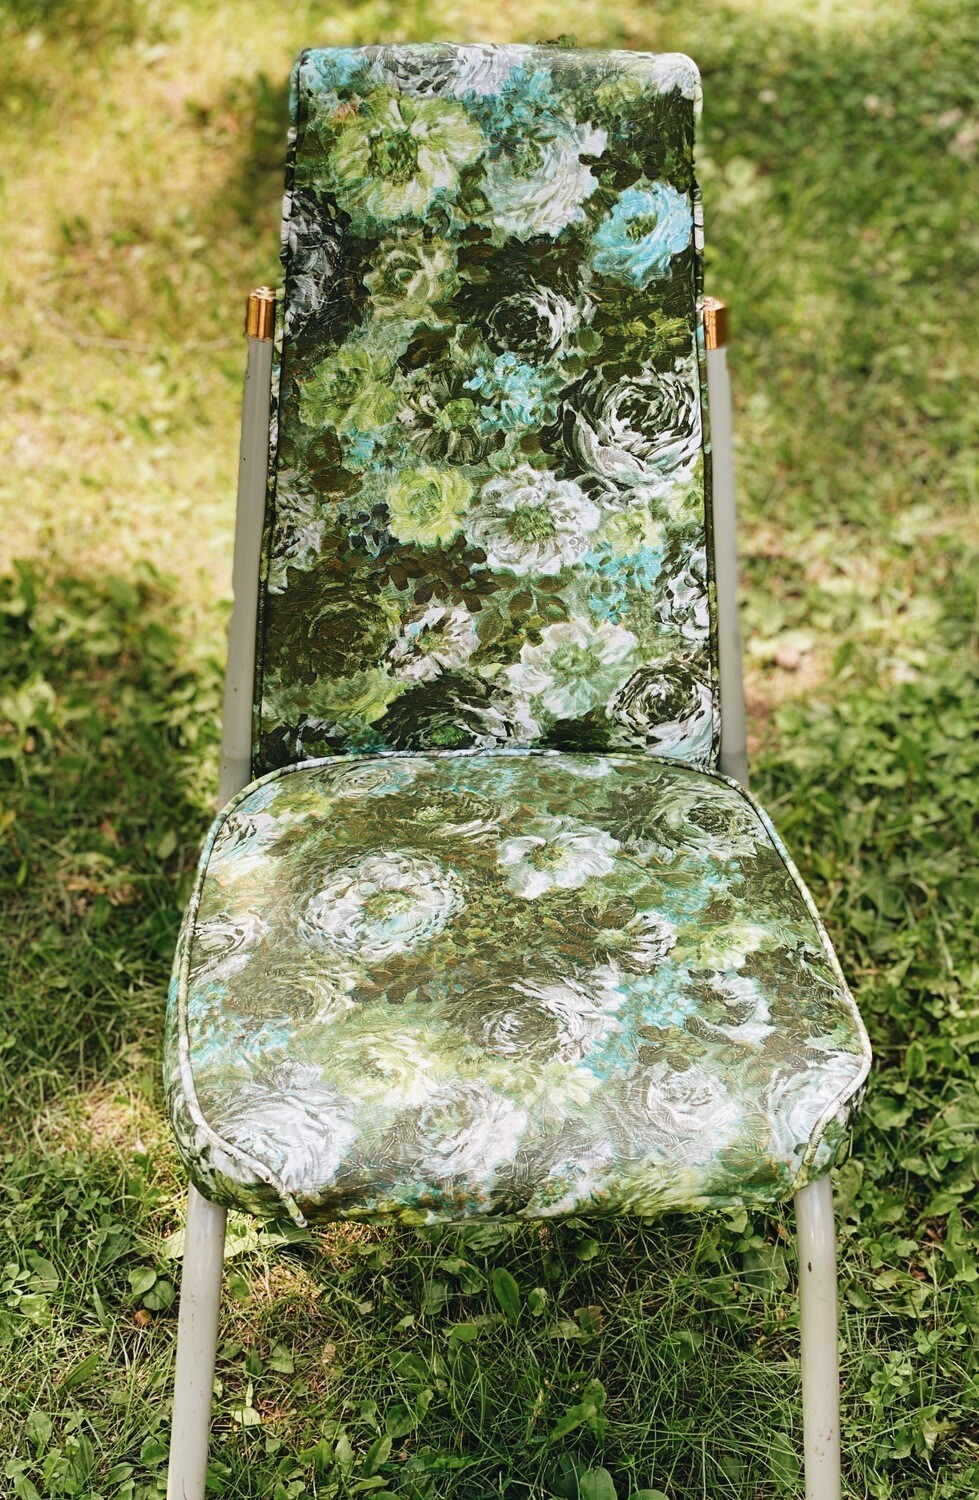 Green Floral Chairs